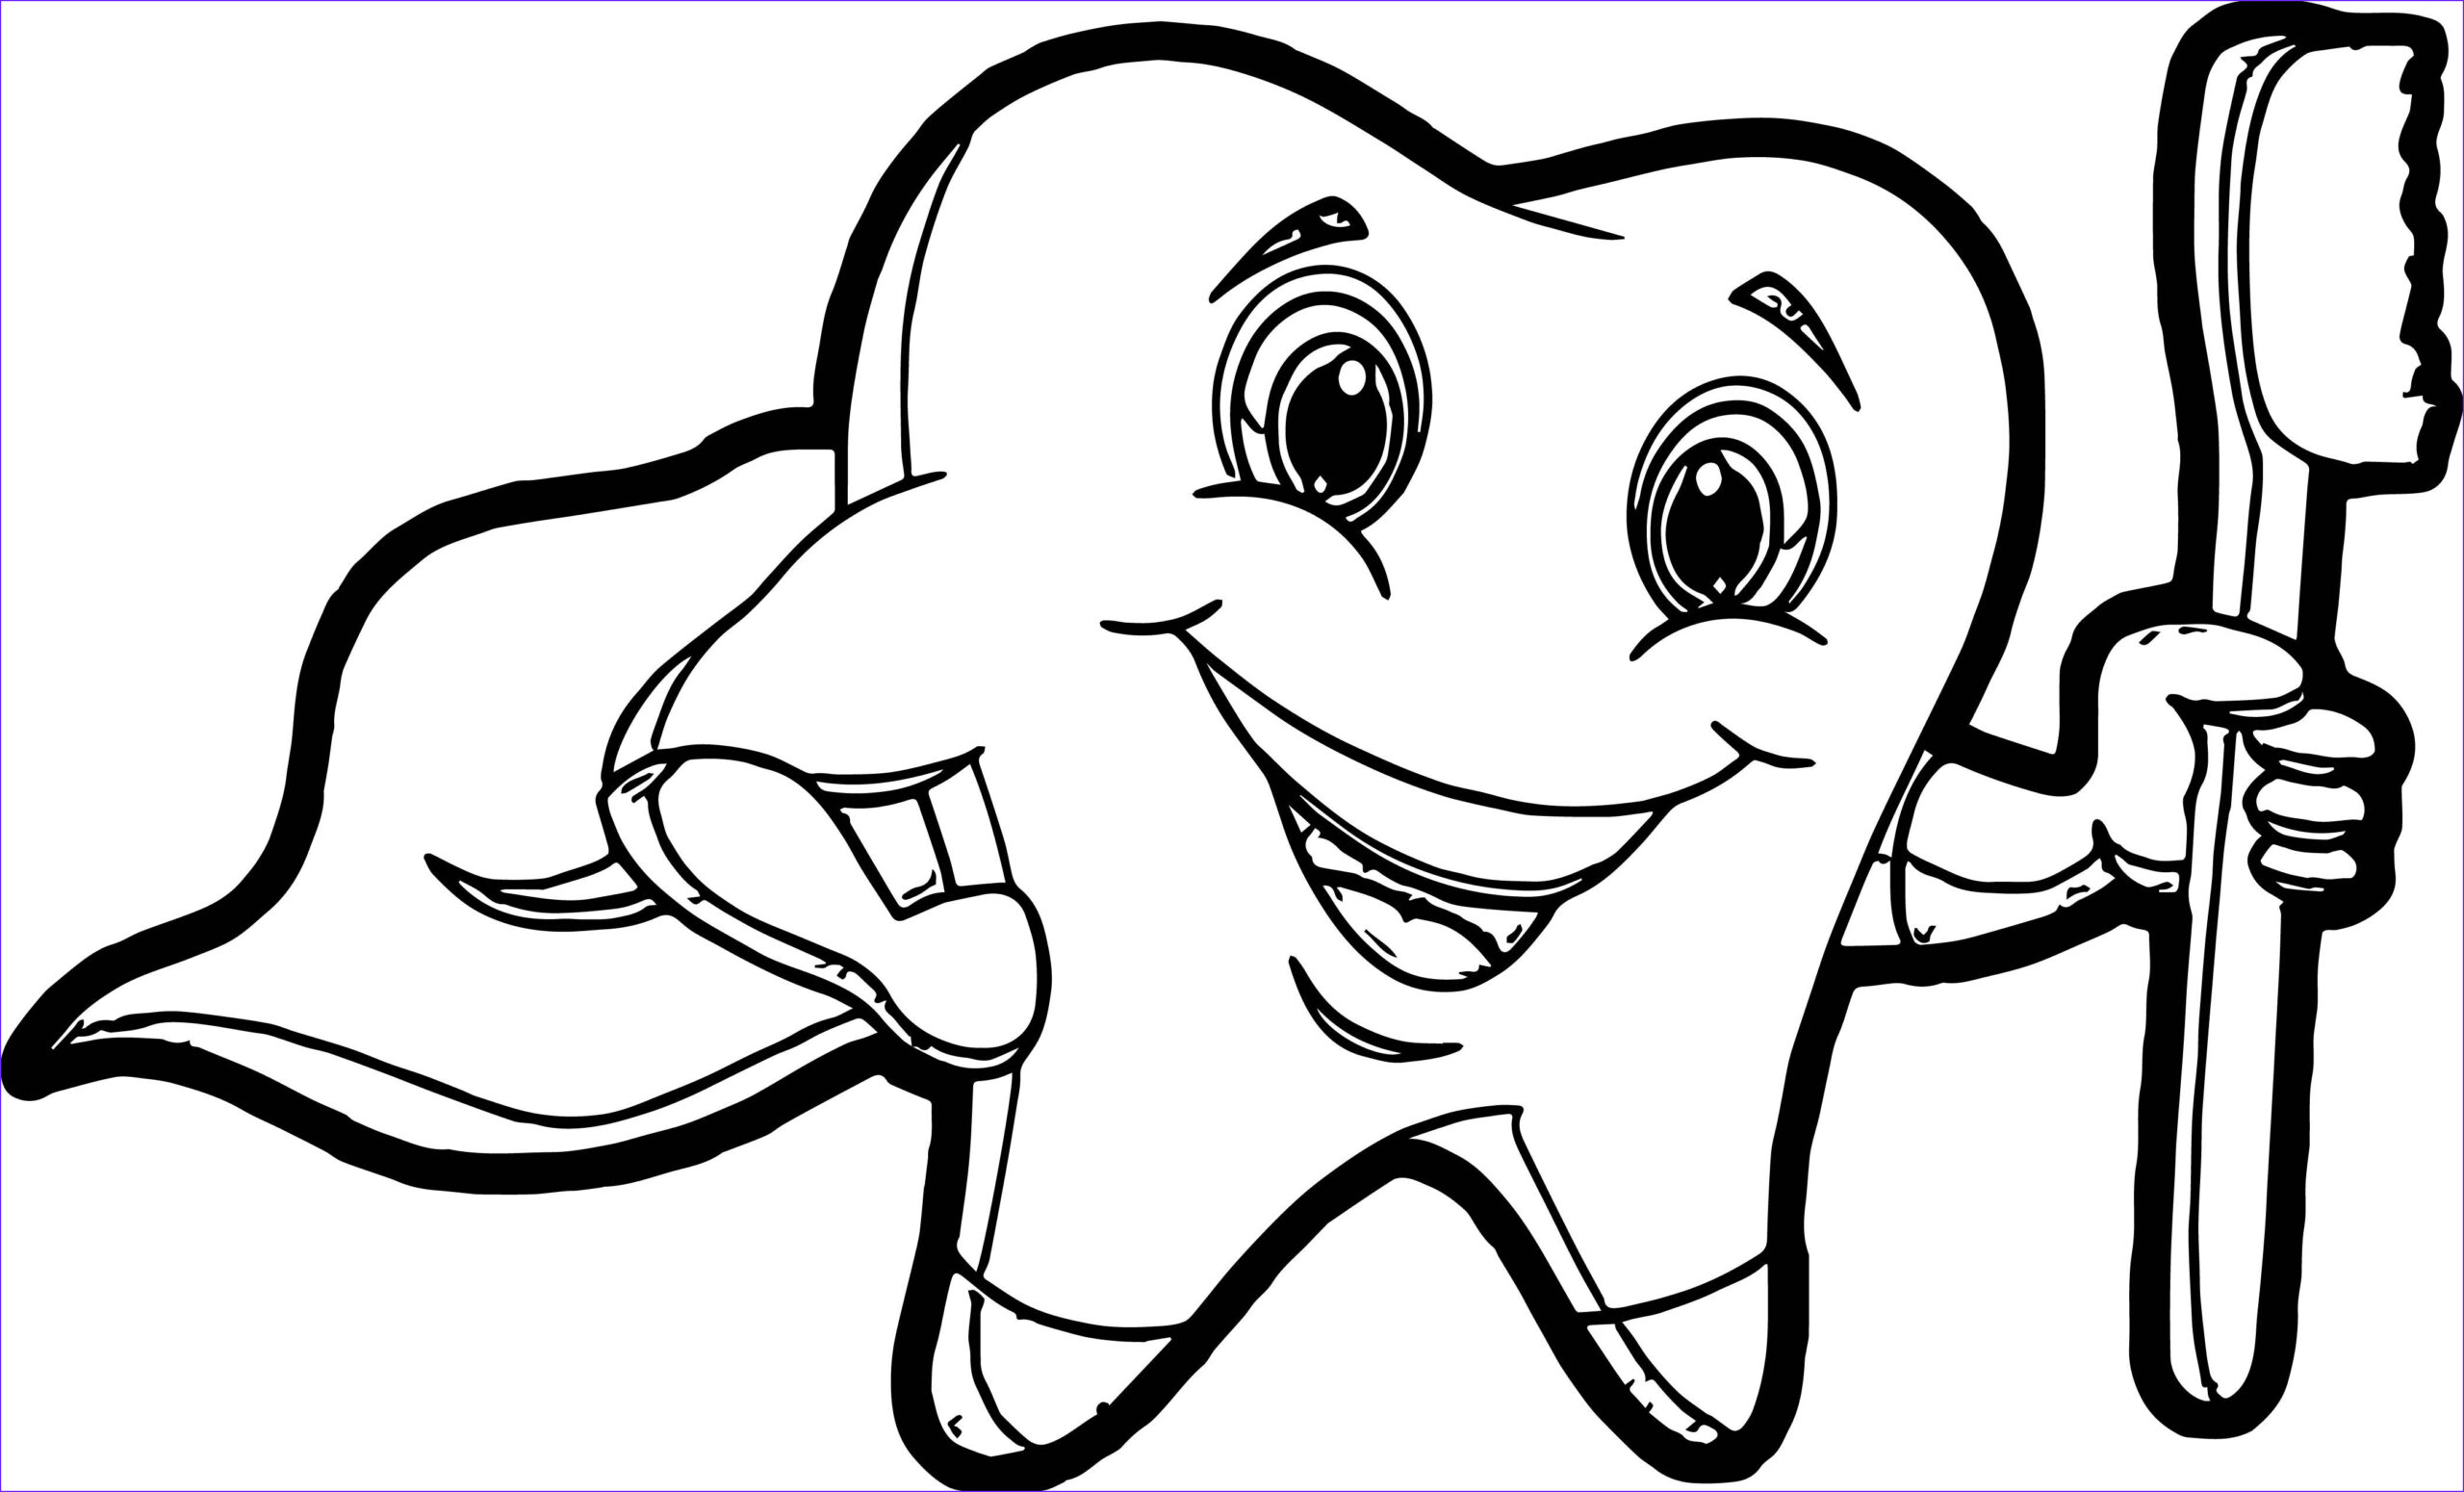 Tooth Coloring Awesome Images tooth Cartoon Teeth Coloring Page